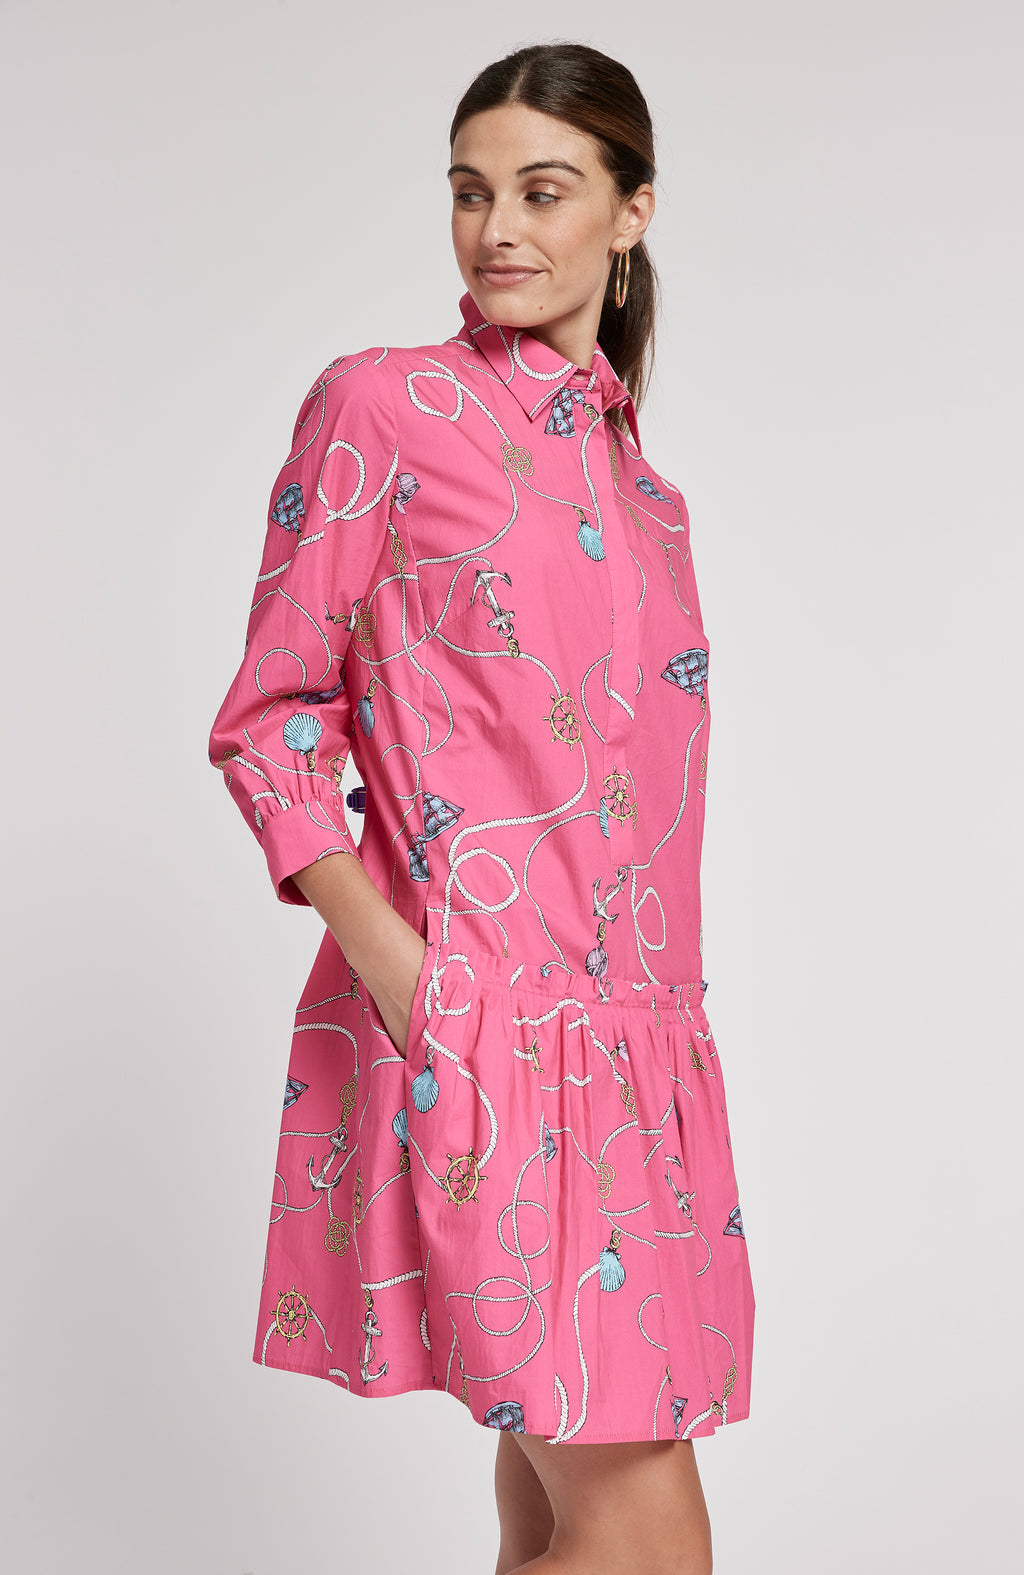 LONI POPLIN CHARM PRINT DRESS - MULTI CHARMS